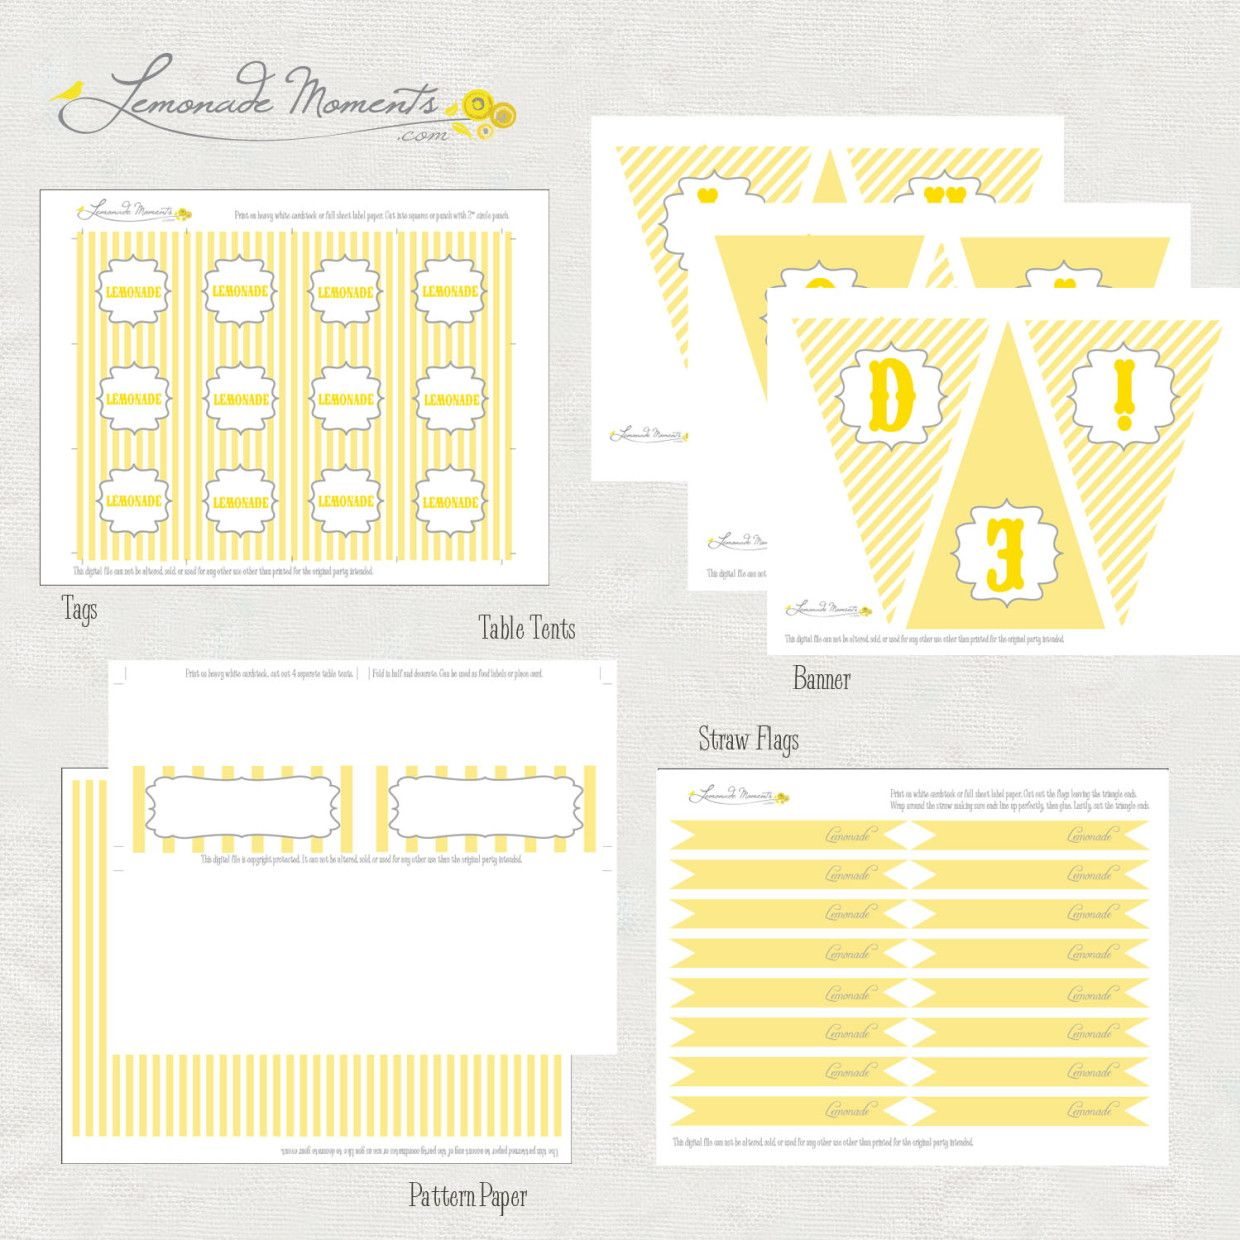 Free Lemonade Stand Printables Saved And Can Print There Is A Cute Bunting Banner For The